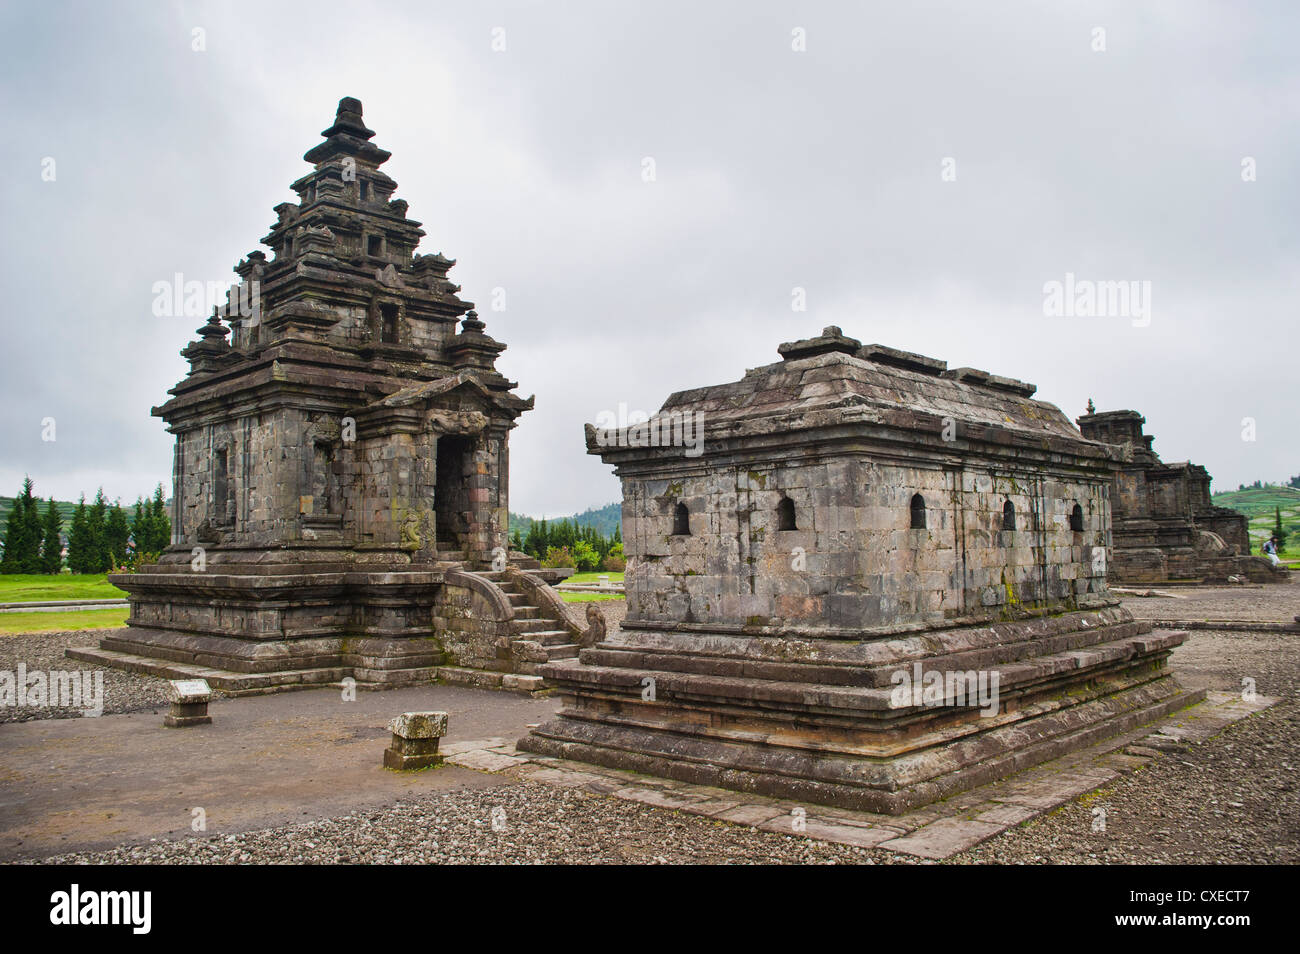 Temples at Candi Arjuna Hindu Temple Complex, Dieng Plateau, Central Java, Indonesia, Southeast Asia, Asia - Stock Image